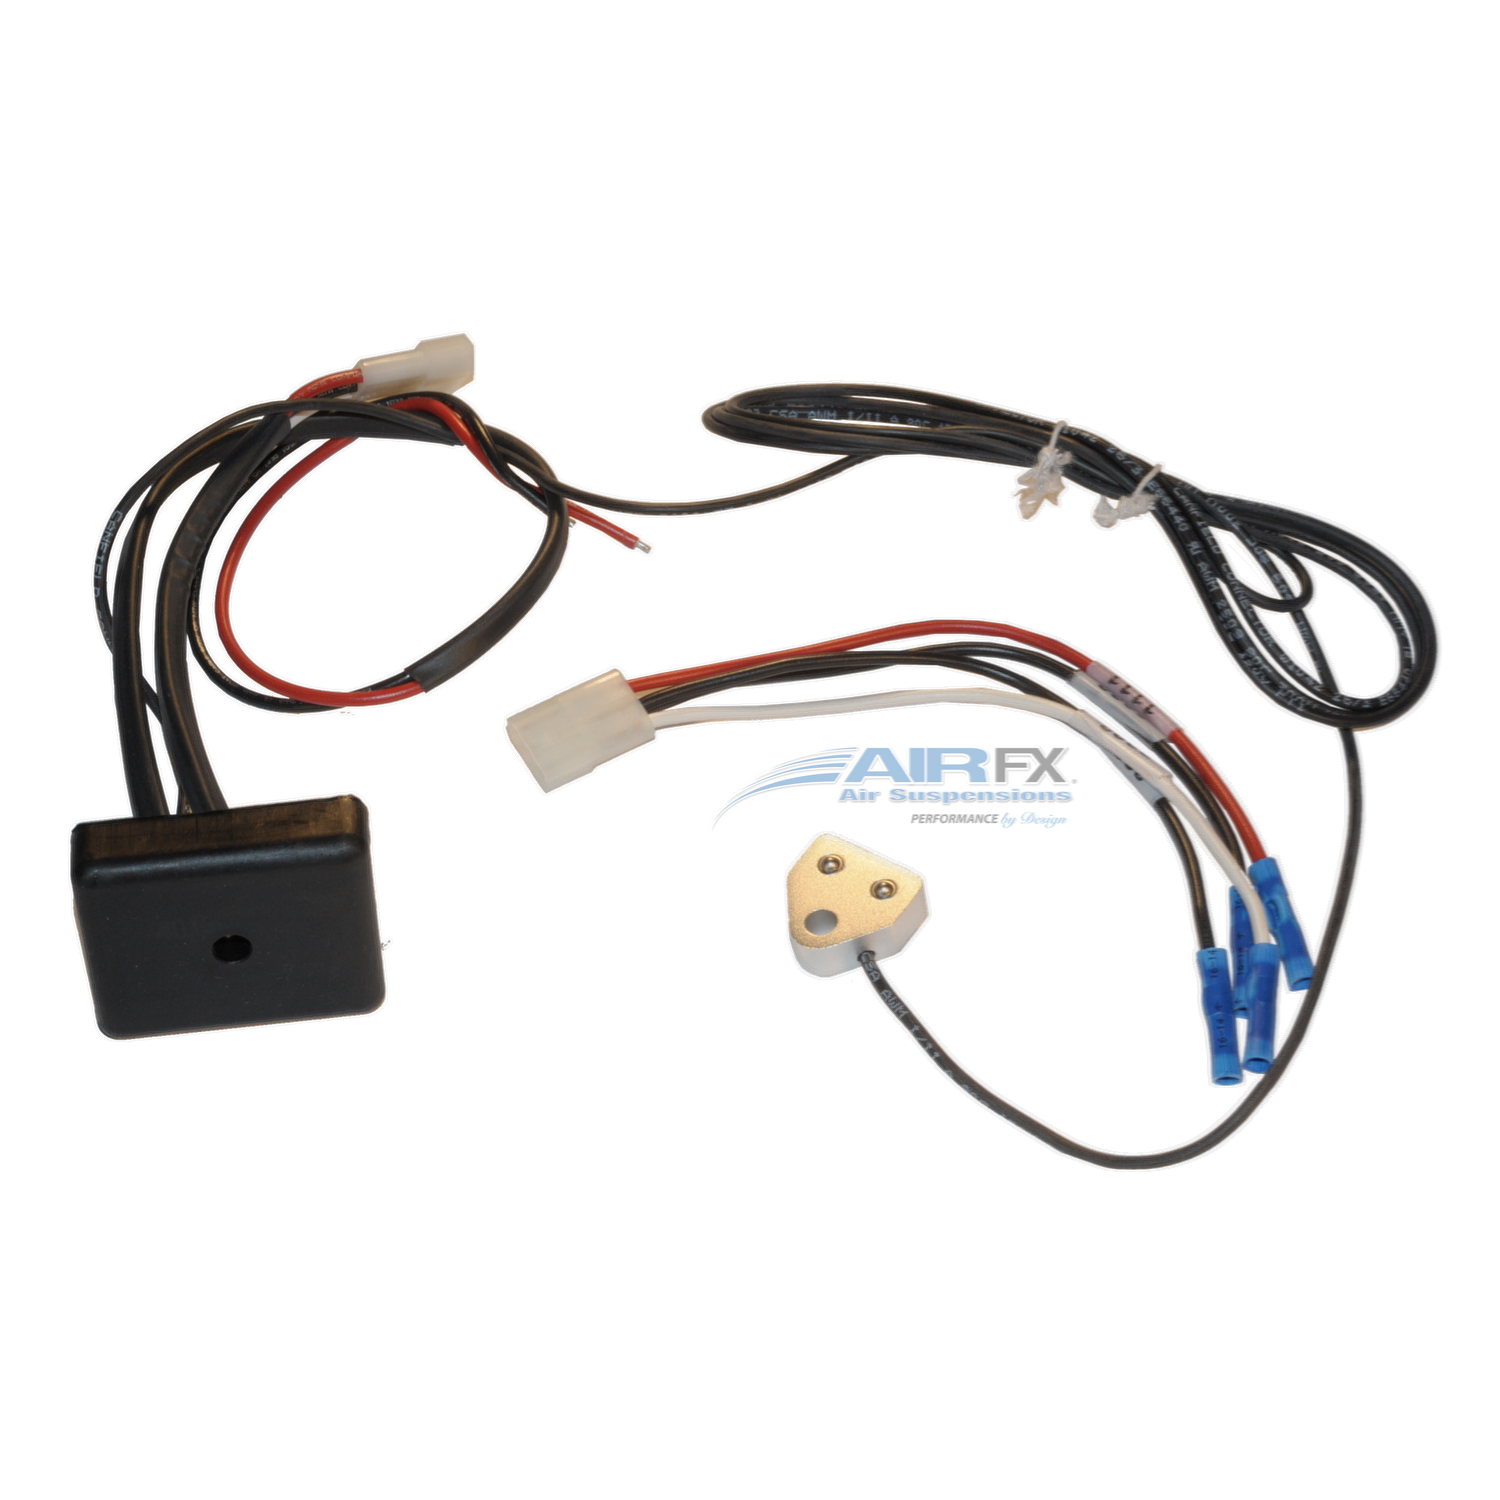 Micro Button Harness, nickel platted - FXA-1010-MB-1 [+$200.00]